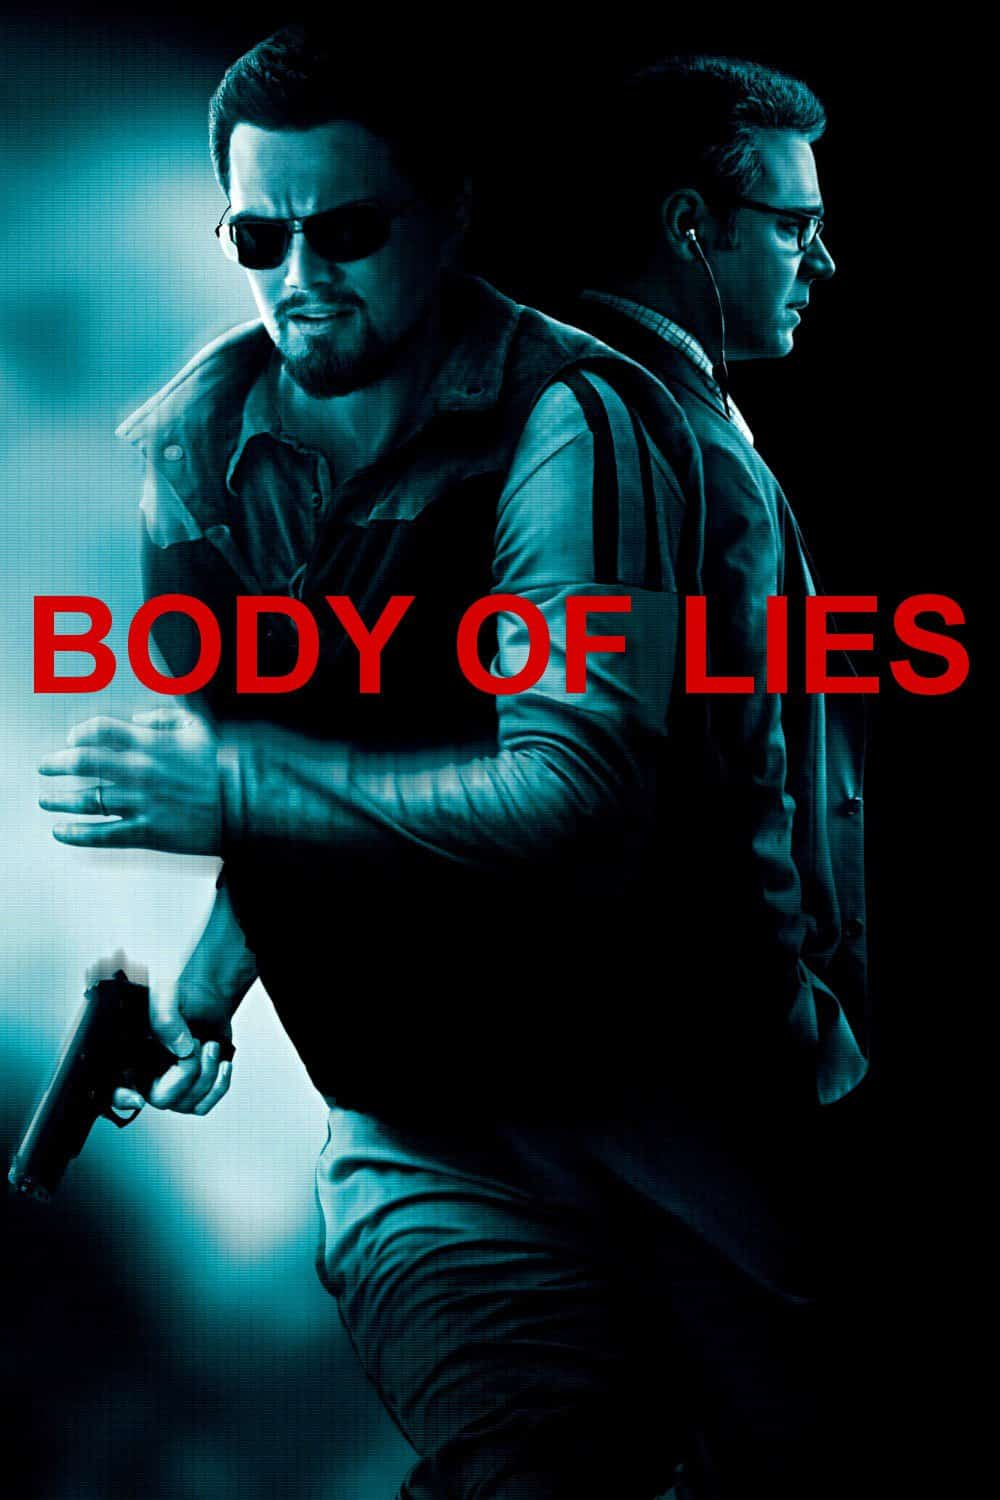 Body of Lies, 2008